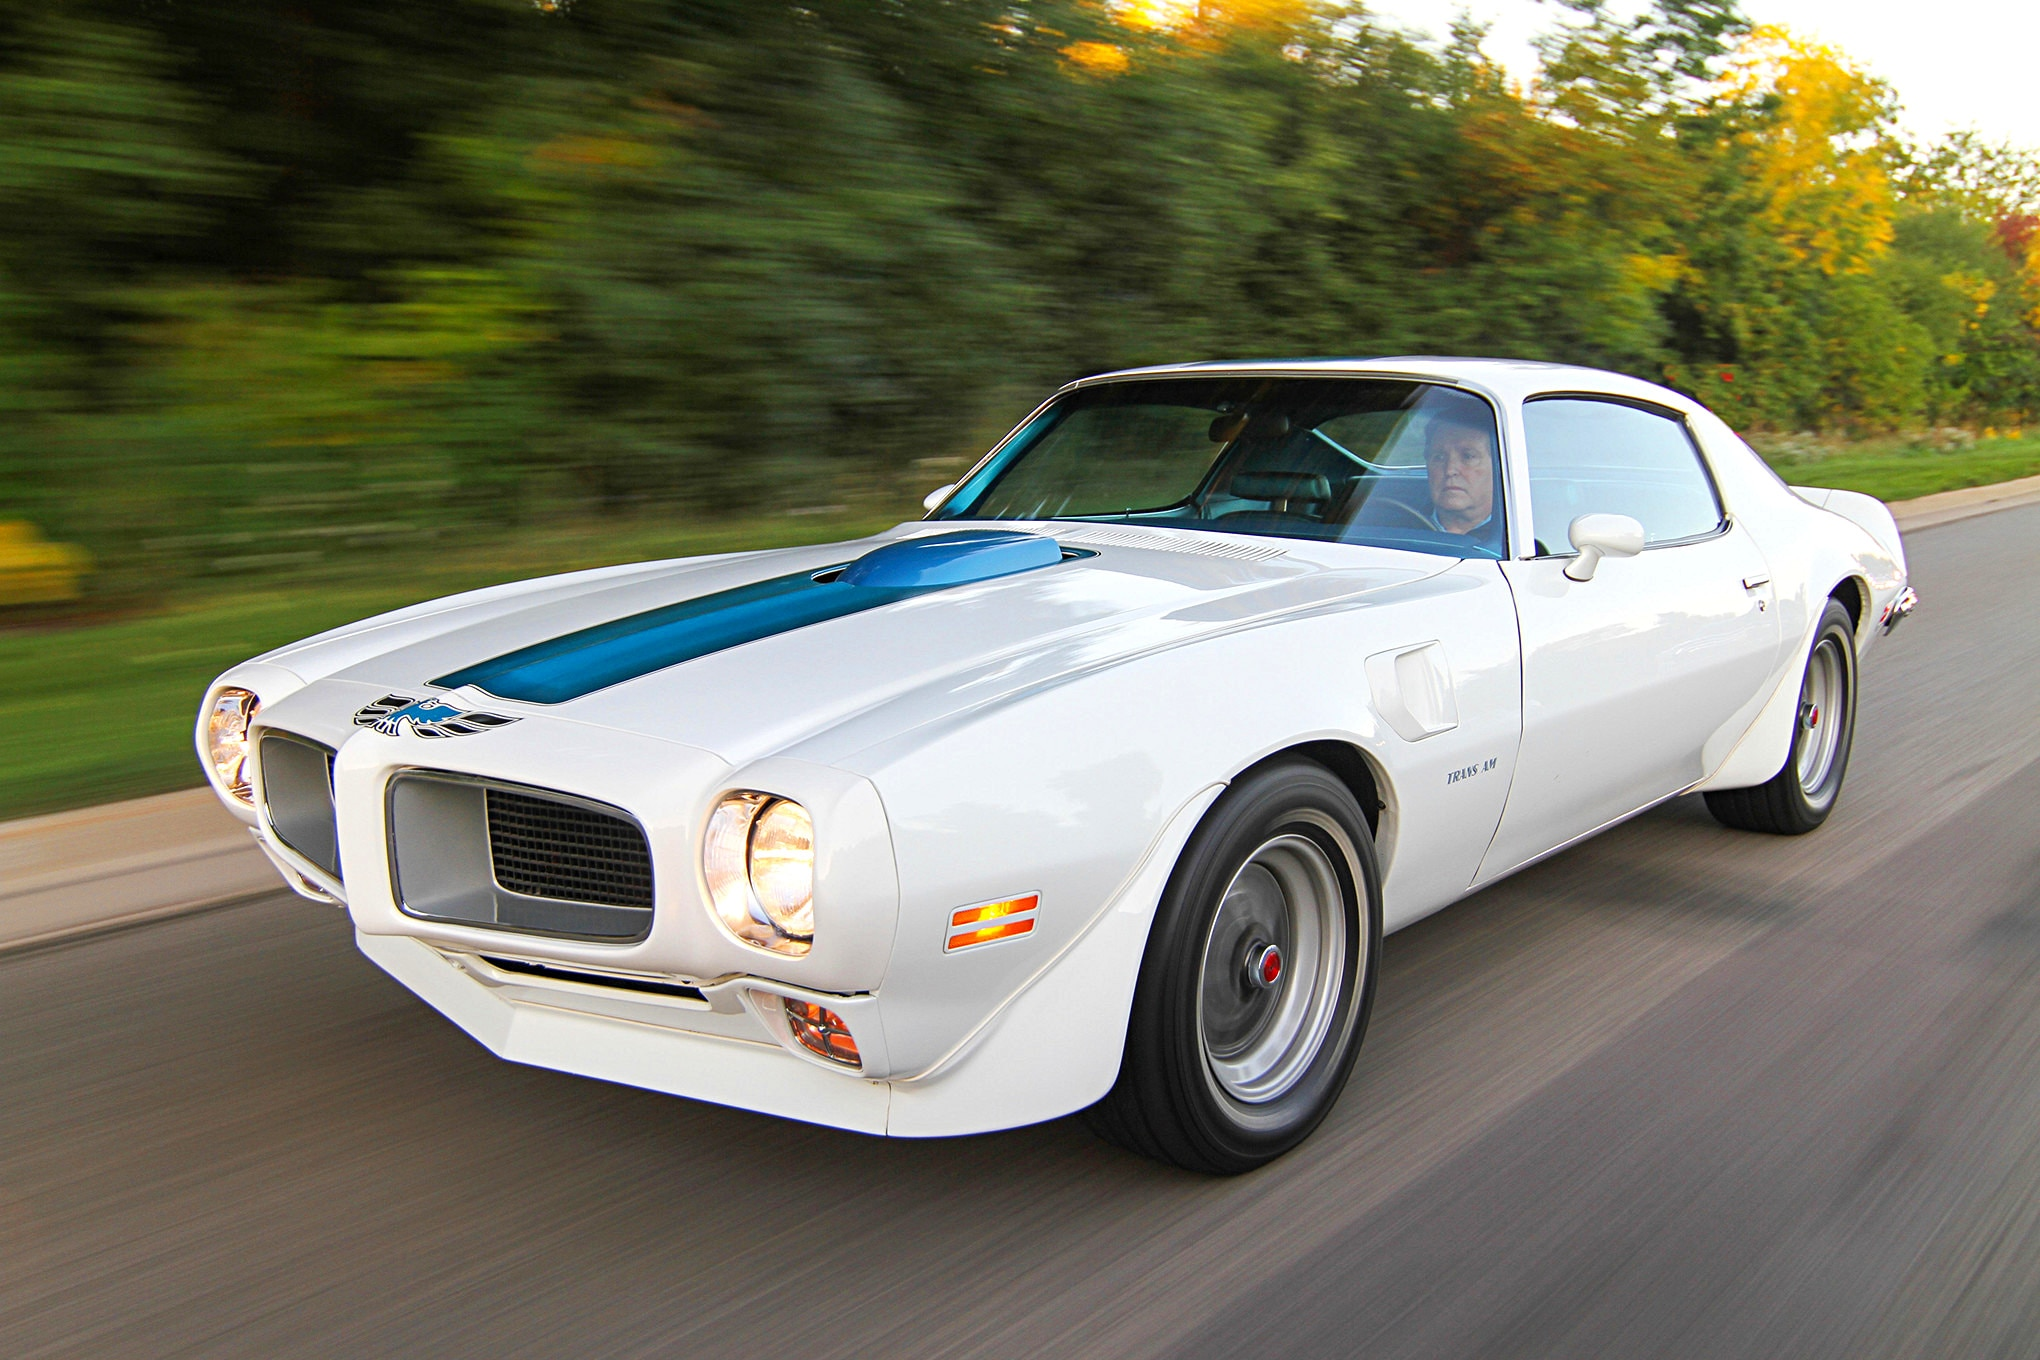 Pontiac transam photo - 1